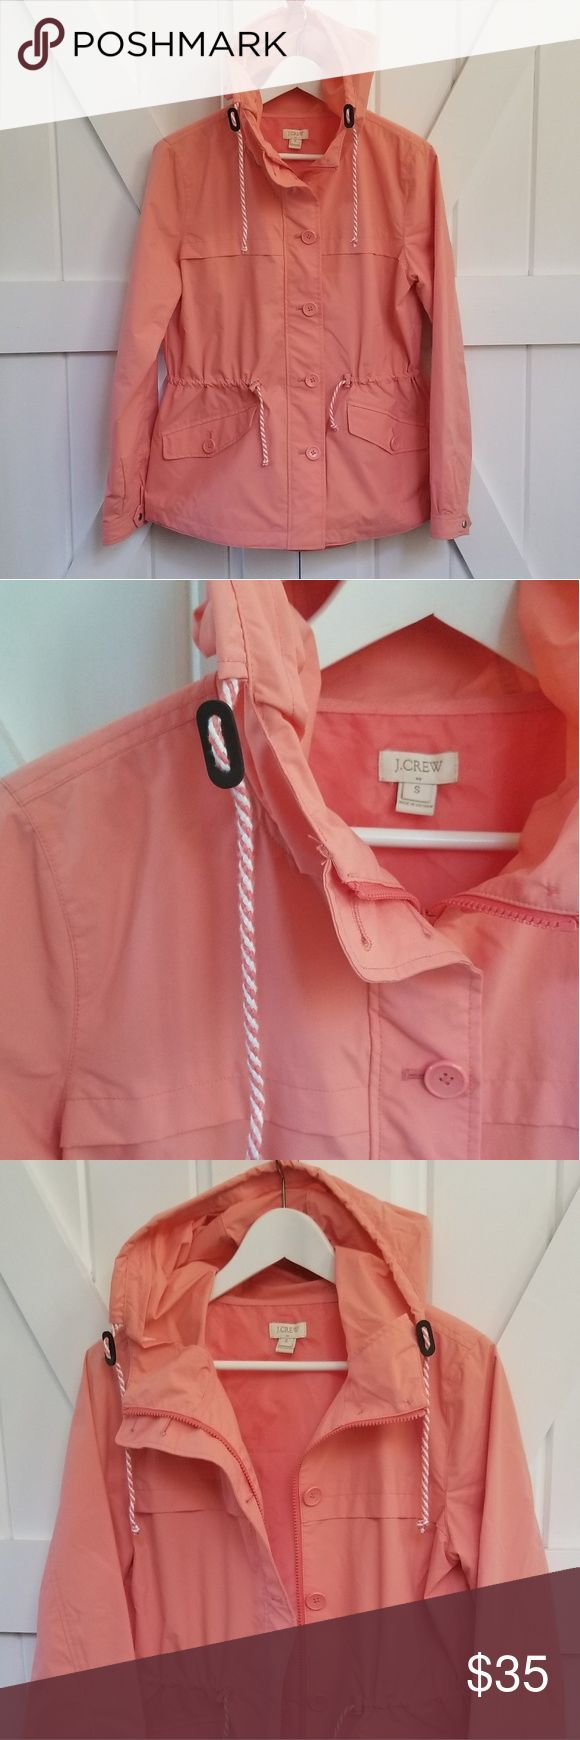 #condition #Crew #Day #Drawstring #excellent #hood #Jacket #Rainy #Rainy Day Outfit athletic #size #Small #Wais J. Crew Rainy Day Jacket Size Small Excellent Condition Drawstring hood and wais...        J. Crew Rainy Day Jacket Size Small Excellent Condition Drawstring hood and waist  Beautiful pink/salmon color J. Crew Jackets & Coats Utility Jackets #rainydayoutfitforwork